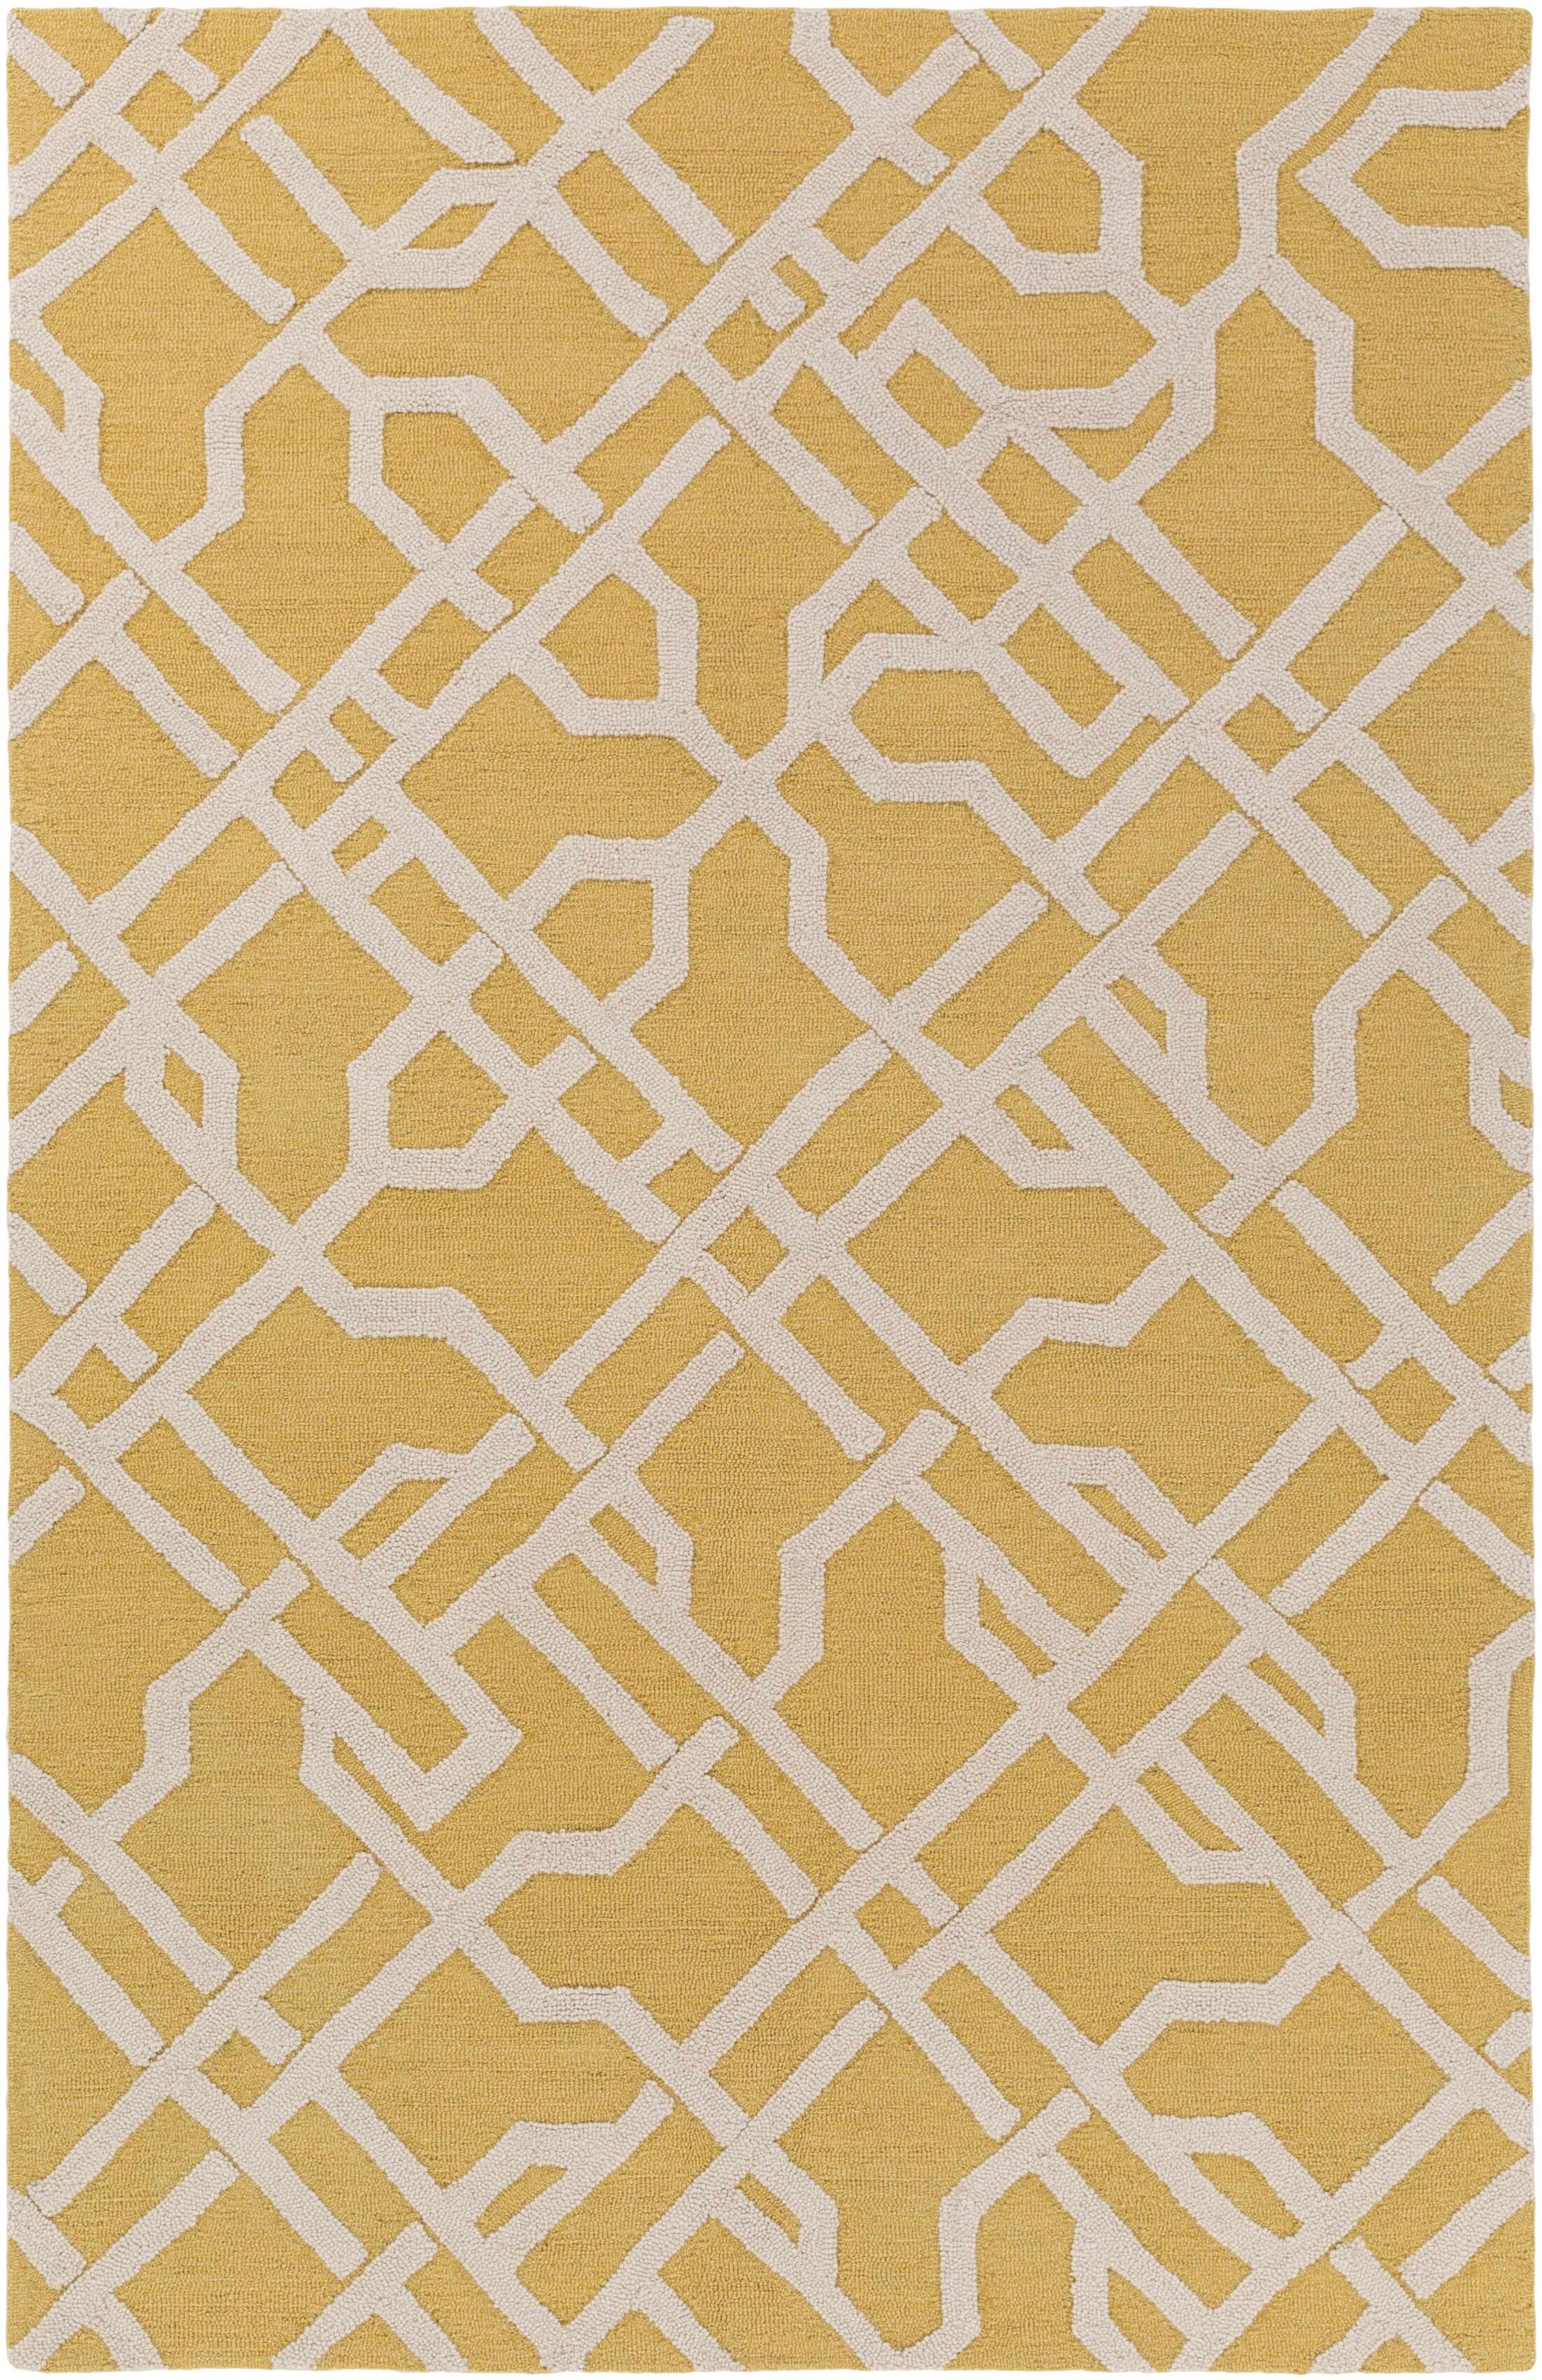 Daigle Hand-Crafted Yellow/Off-White Area Rug Rug Size: Rectangle 7'6